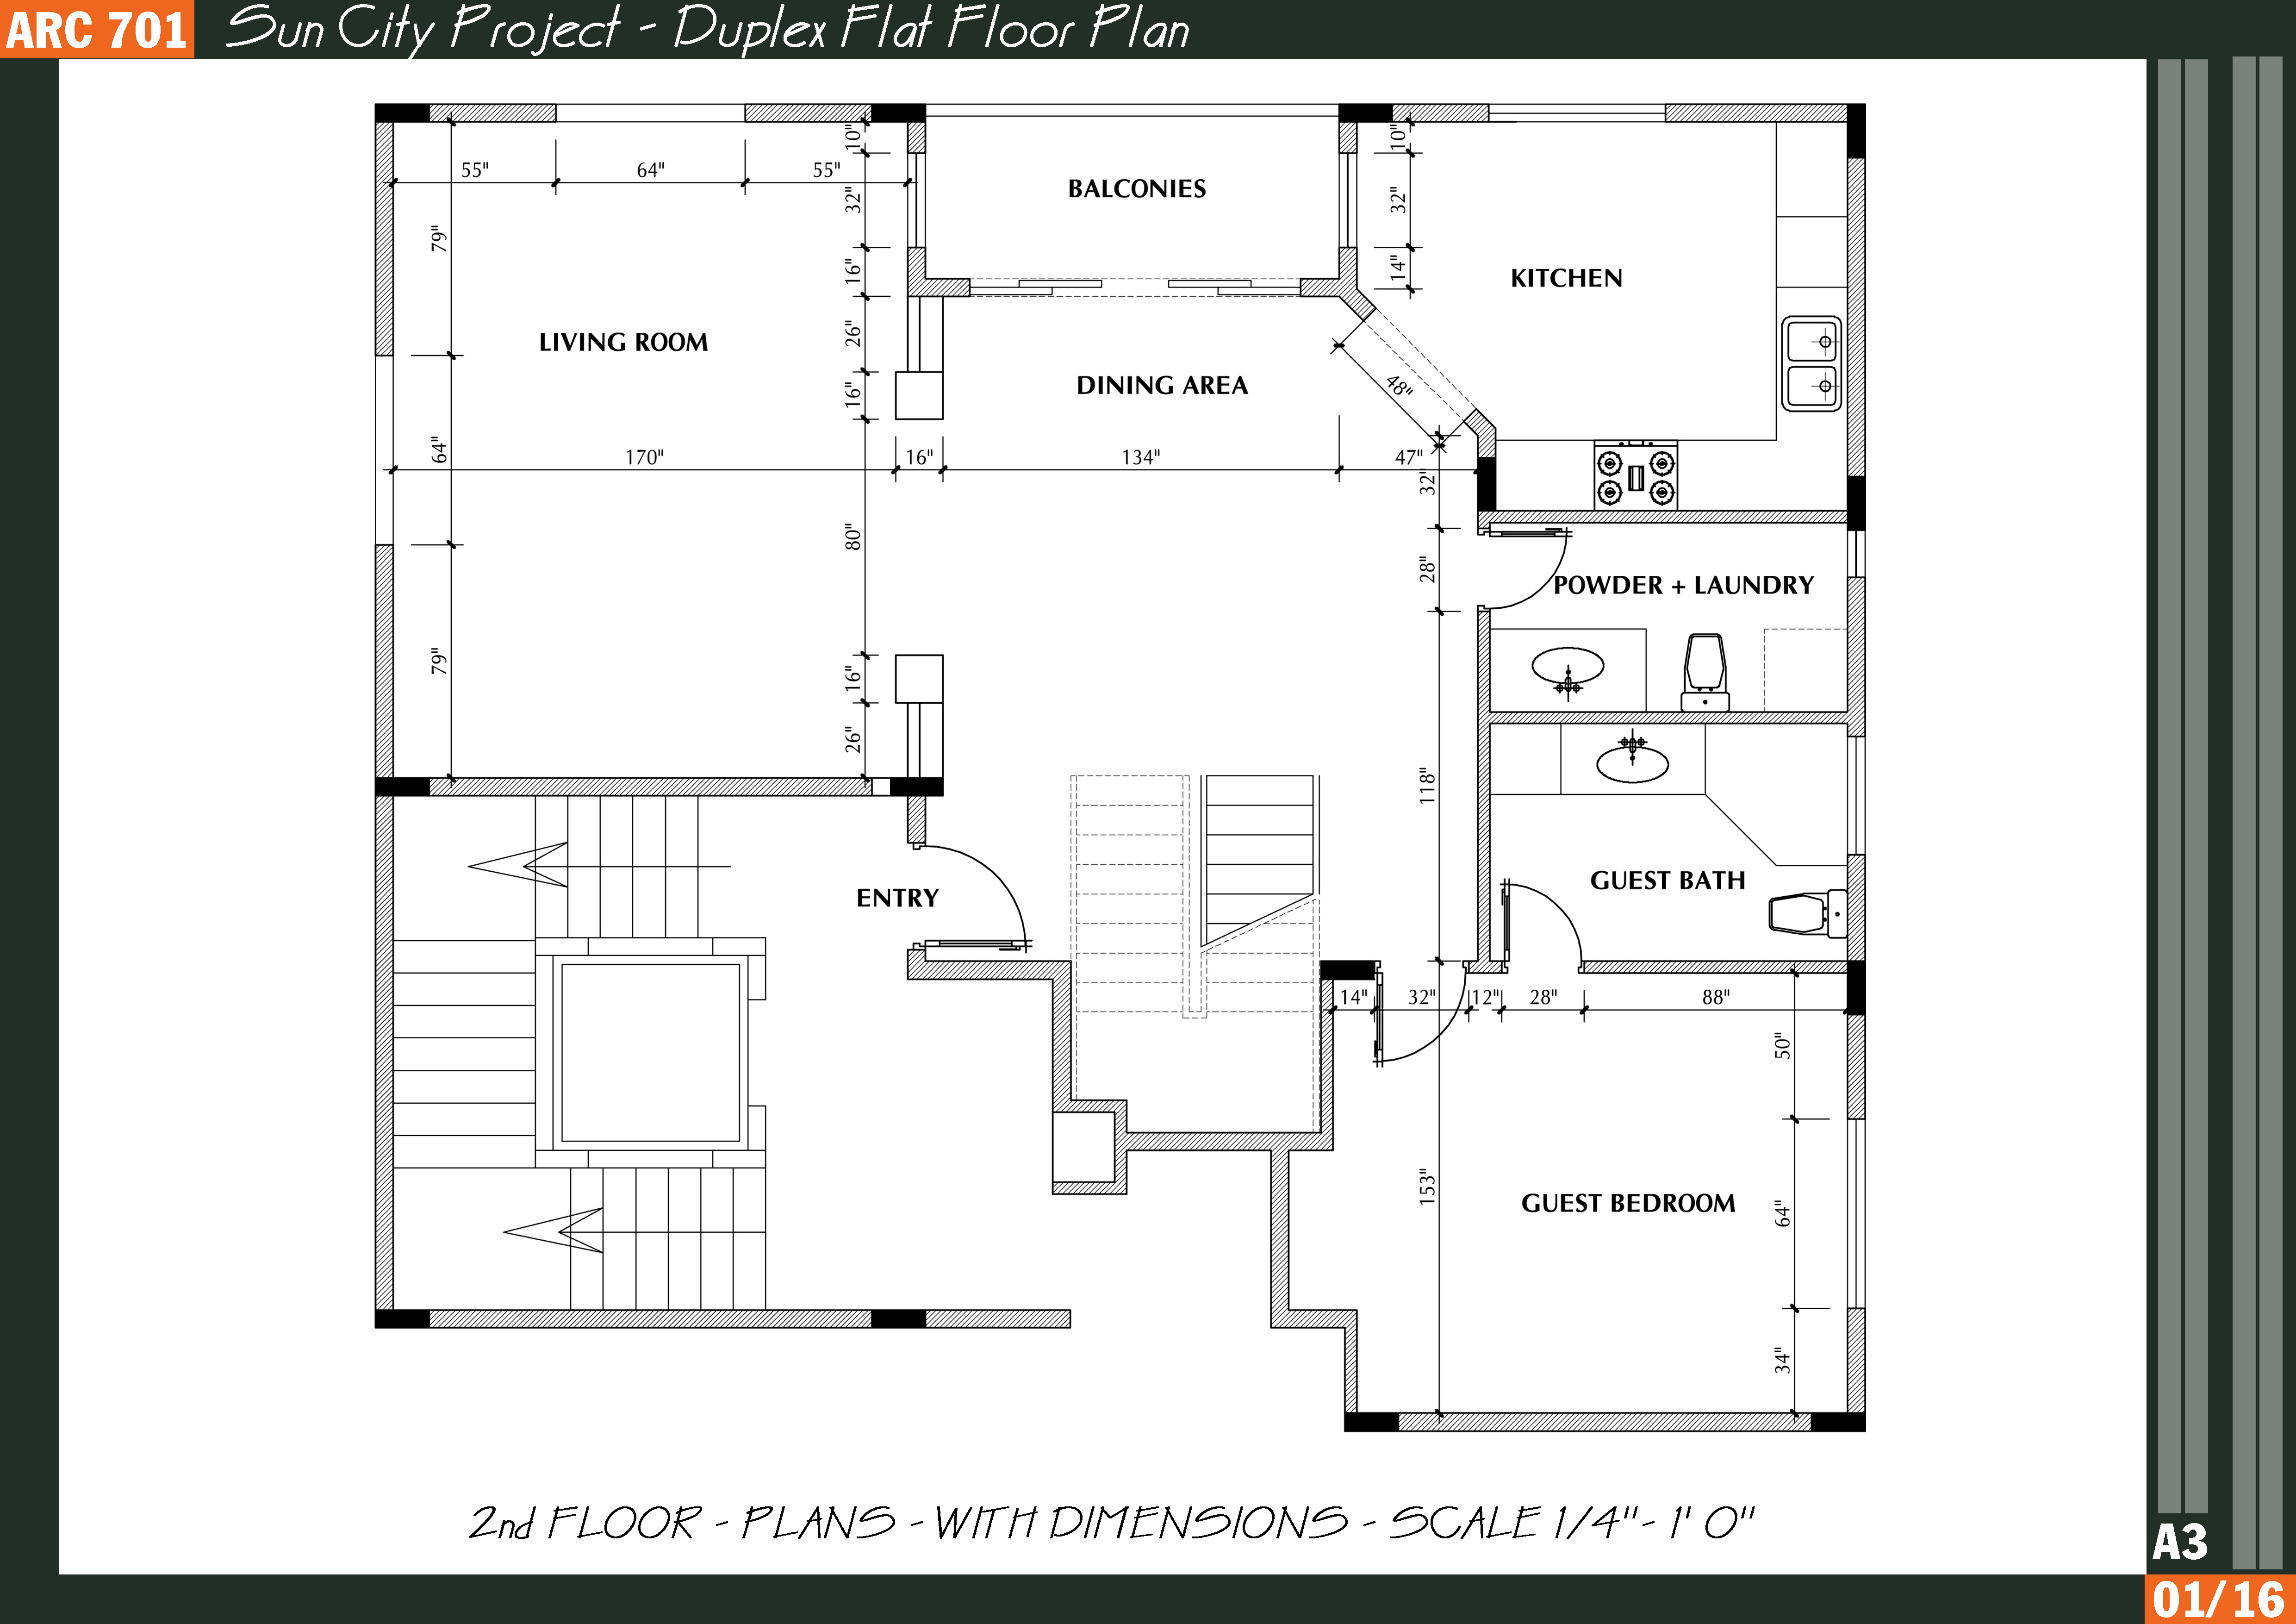 Viewdesignerproject Projectresidential: residential building plans